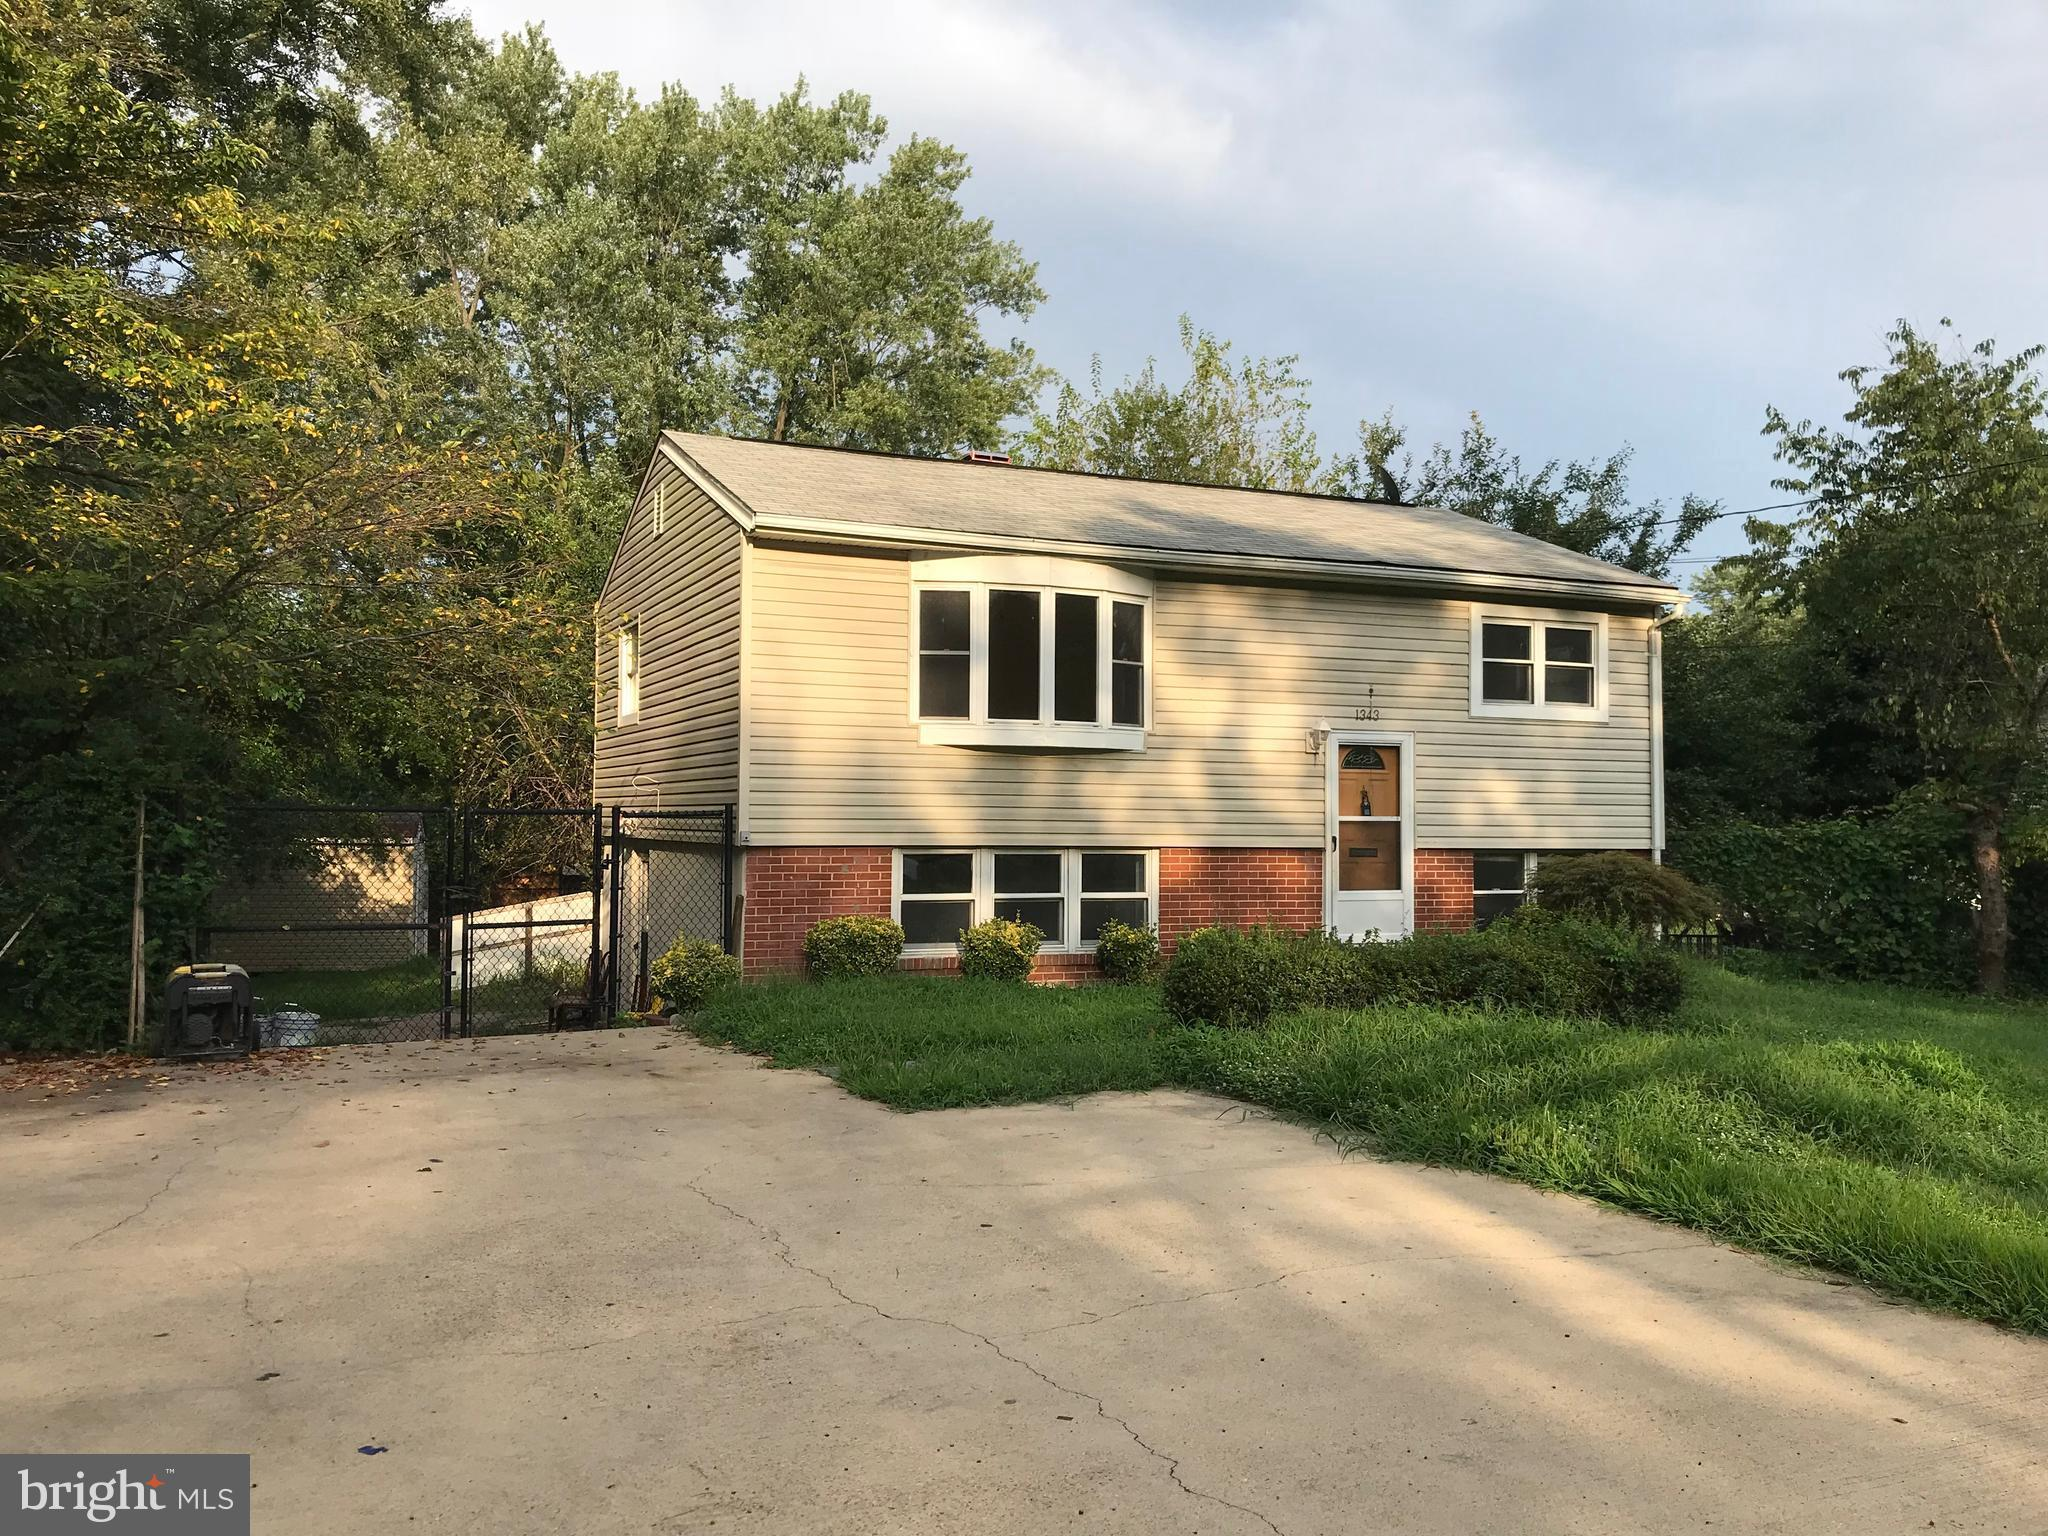 Beautiful single family house with nice backyard.Four bedrooms with two full baths. Open floor plan in great location. New paint through out the house. New carpet, hardwood floor on main level. All brand new appliances and granite counter top.Please call for prior to showing. Sentrilock front door. Vacant.